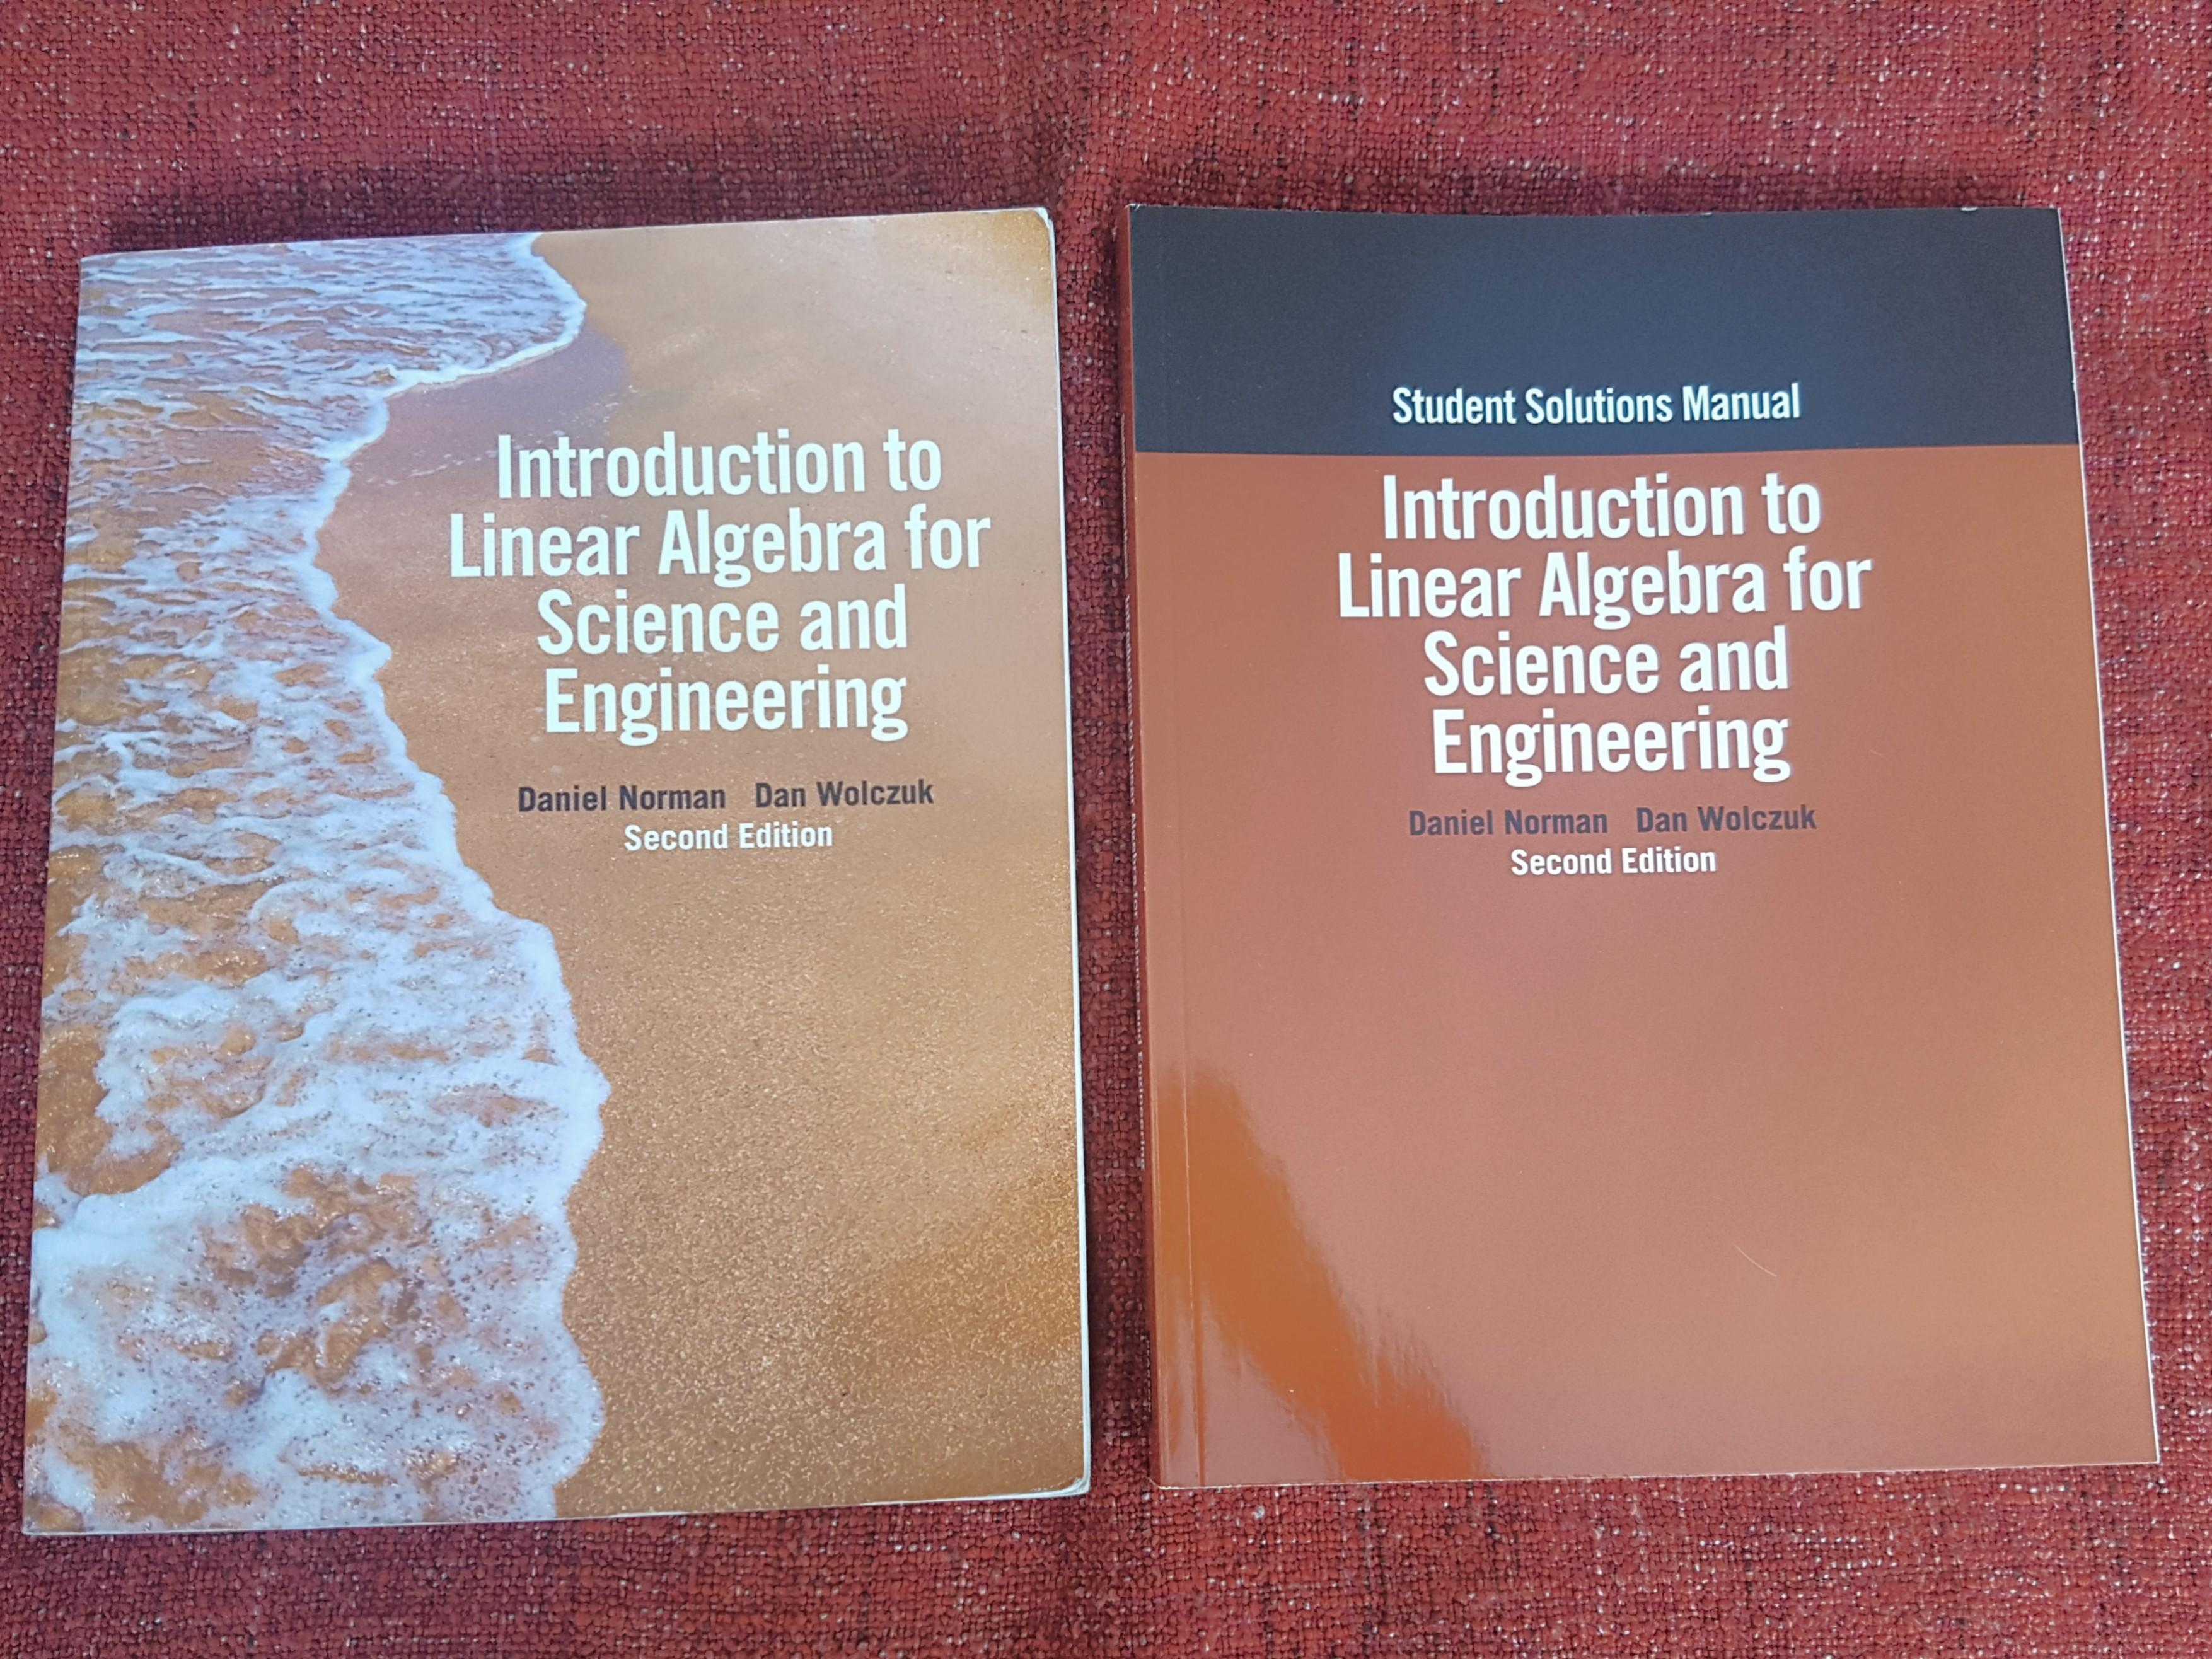 Introduction to Linear Algebra for science and engineering - MAT188